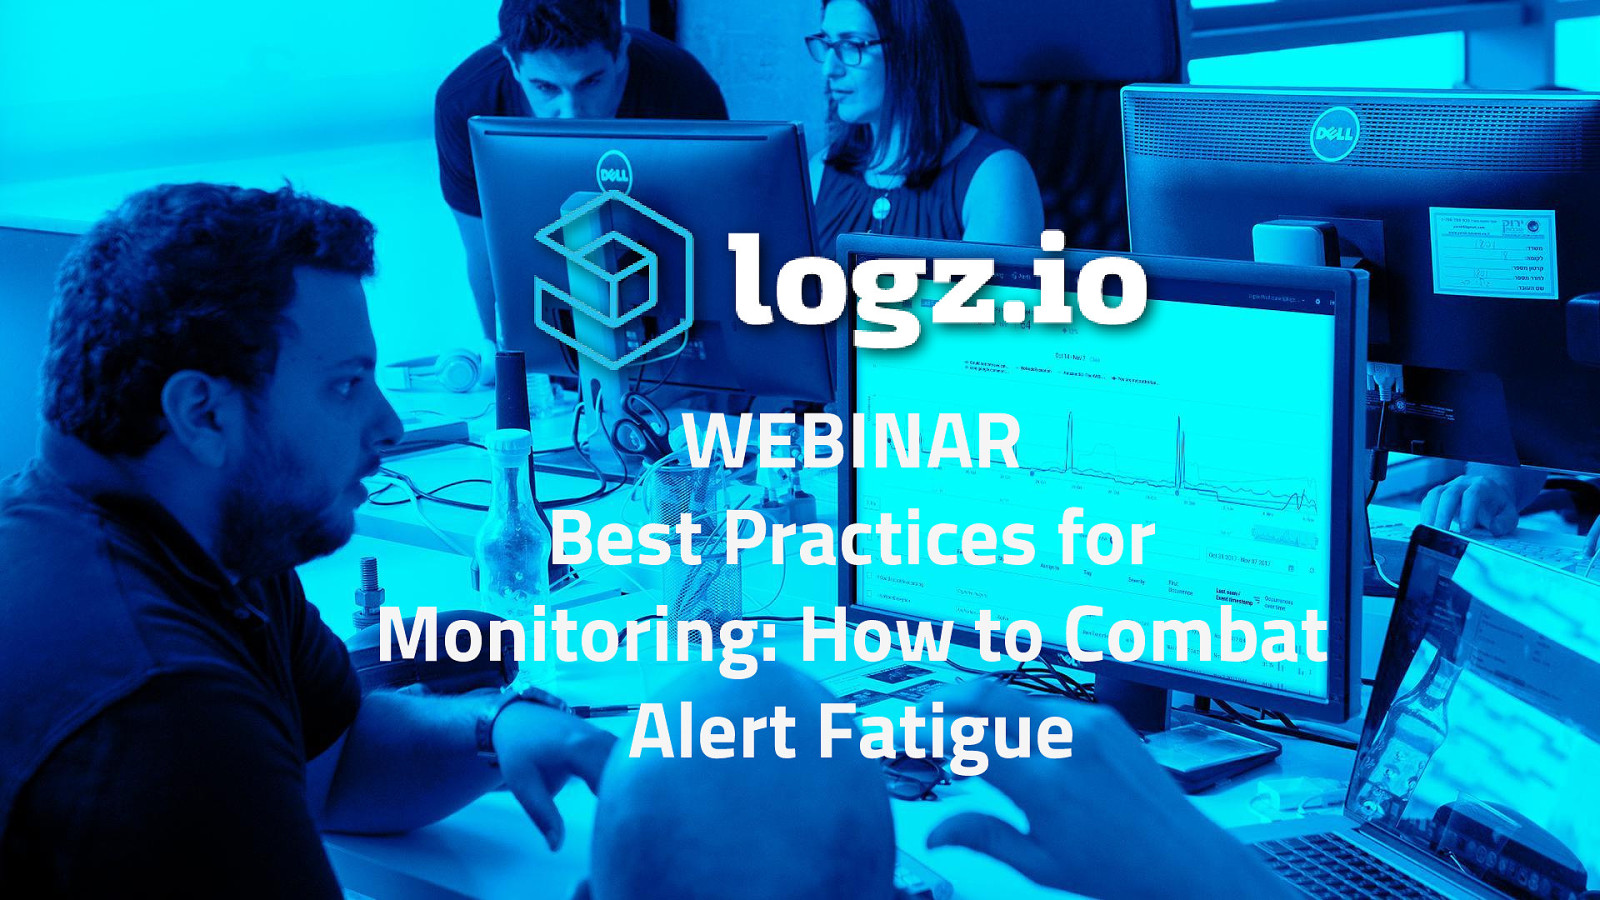 Best Practices for Monitoring: How to Combat Alert Fatigue